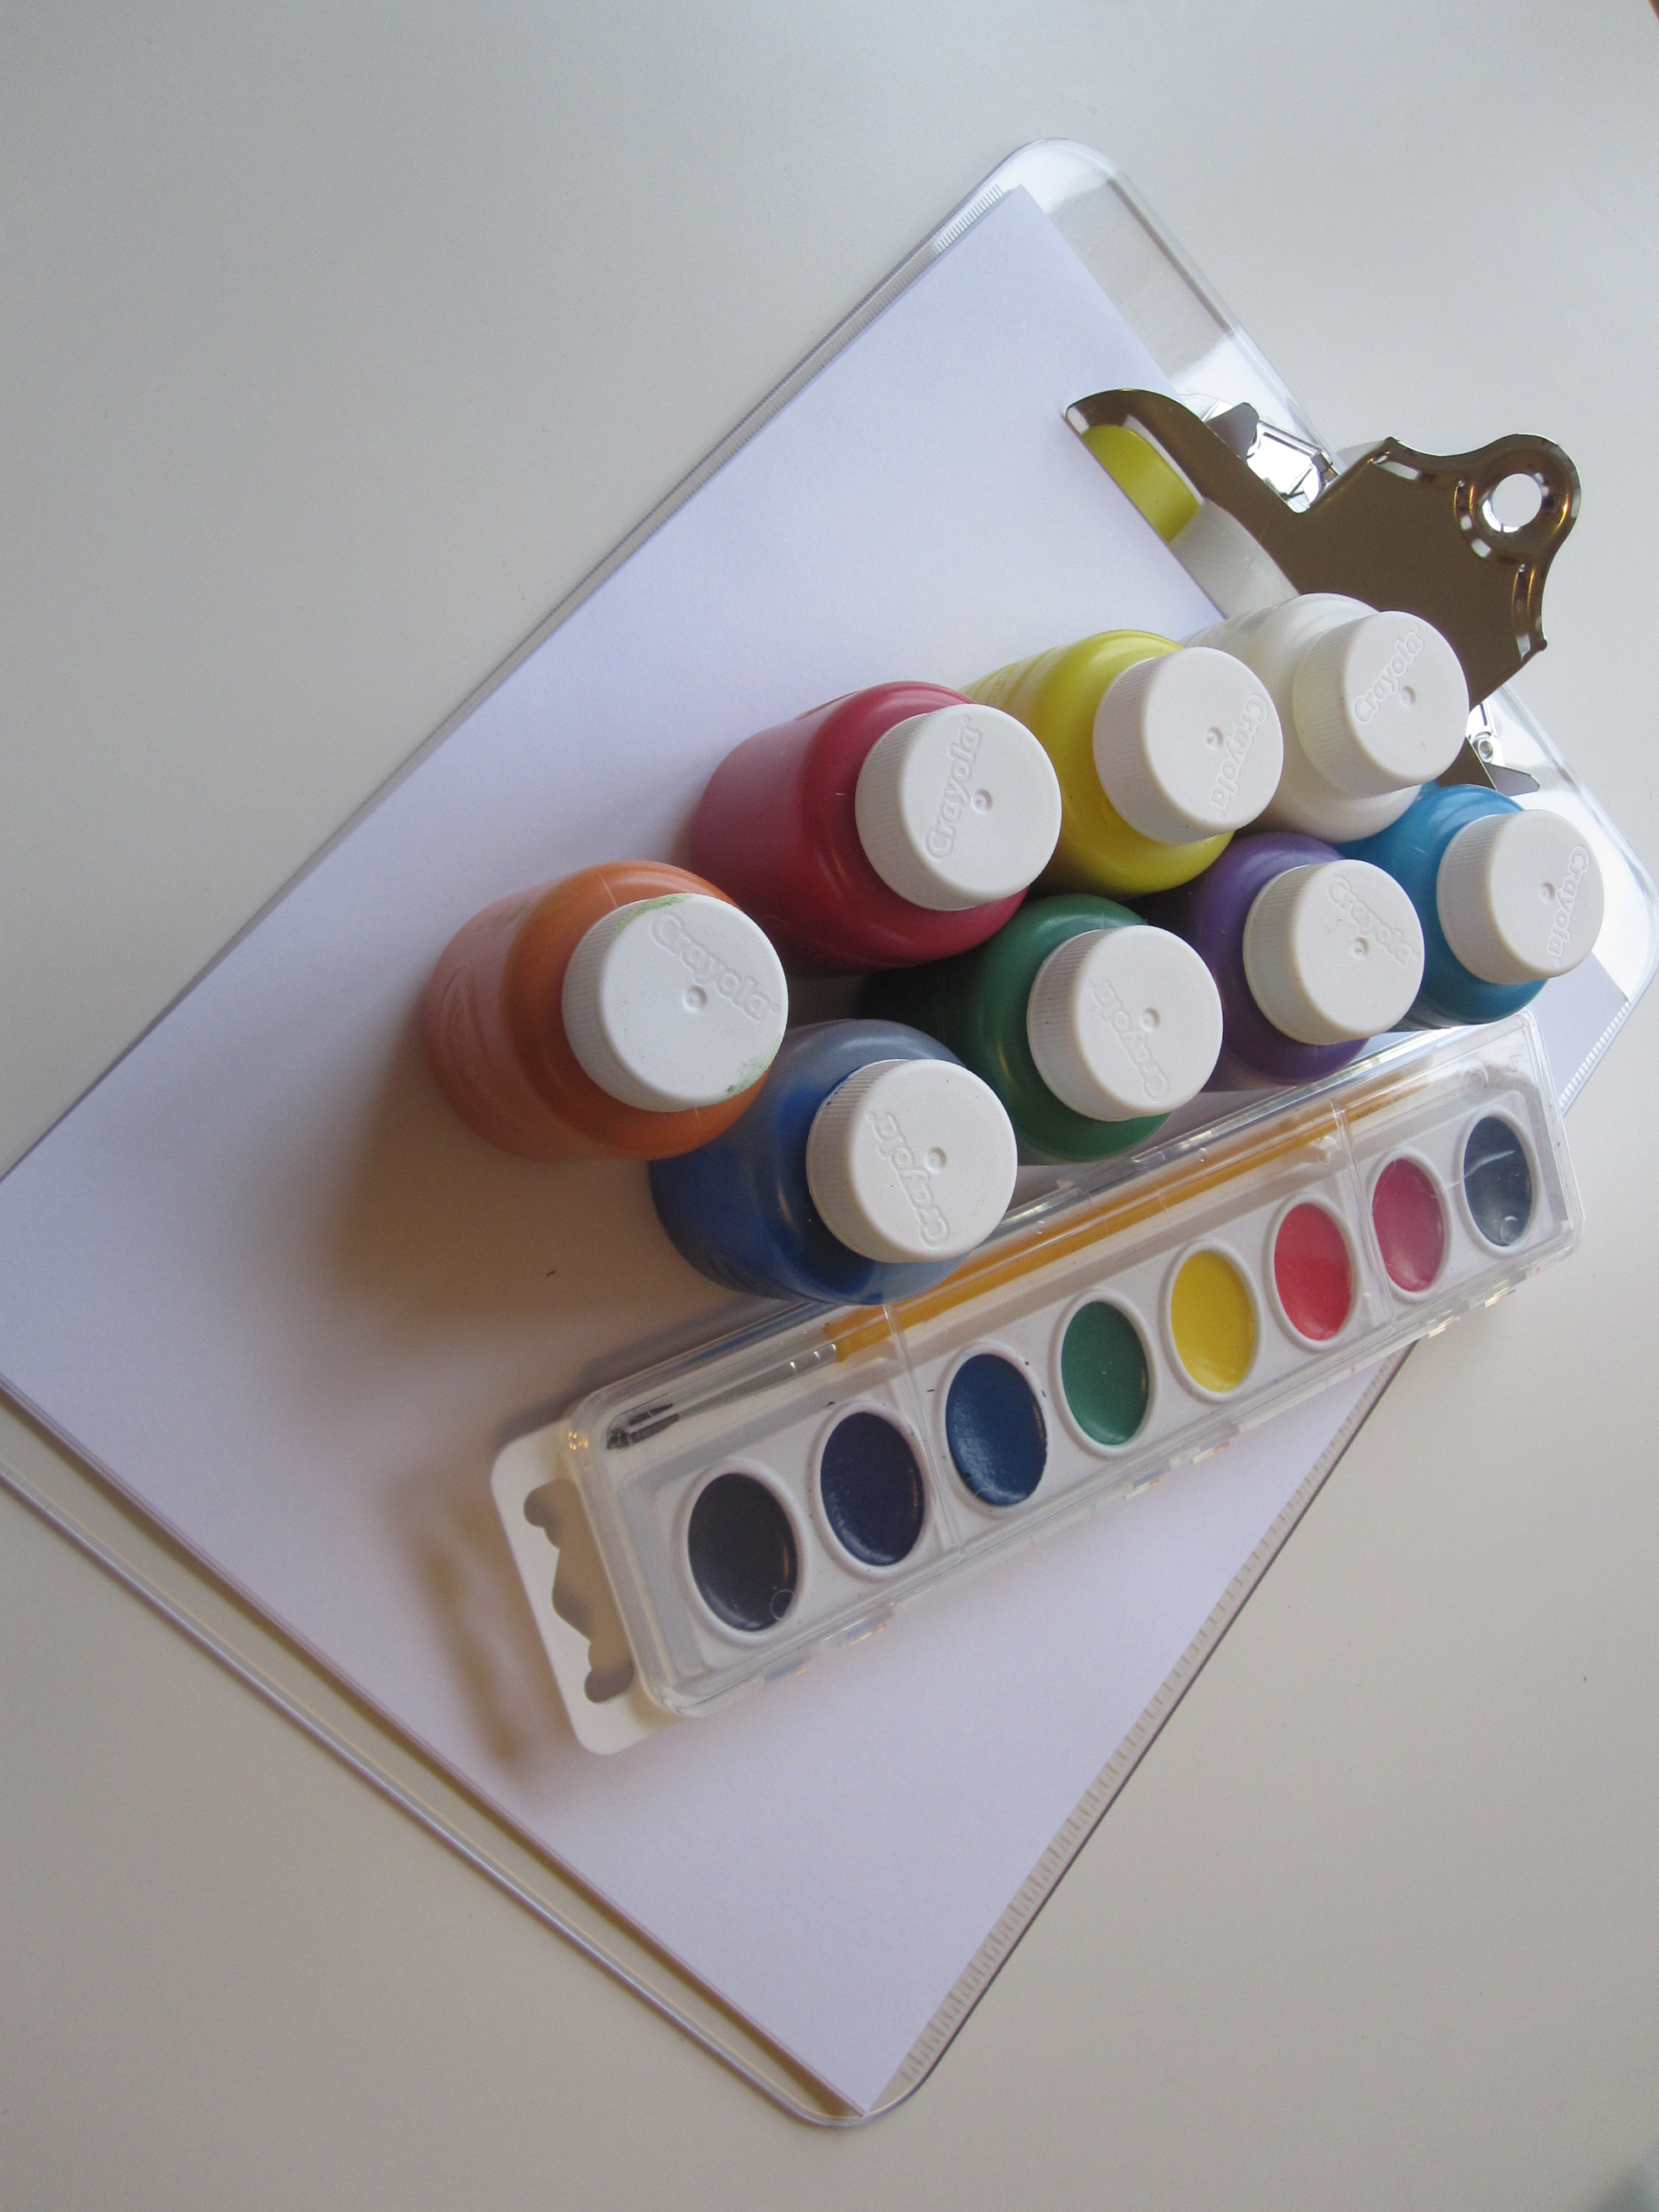 Supplies for easy outside painting